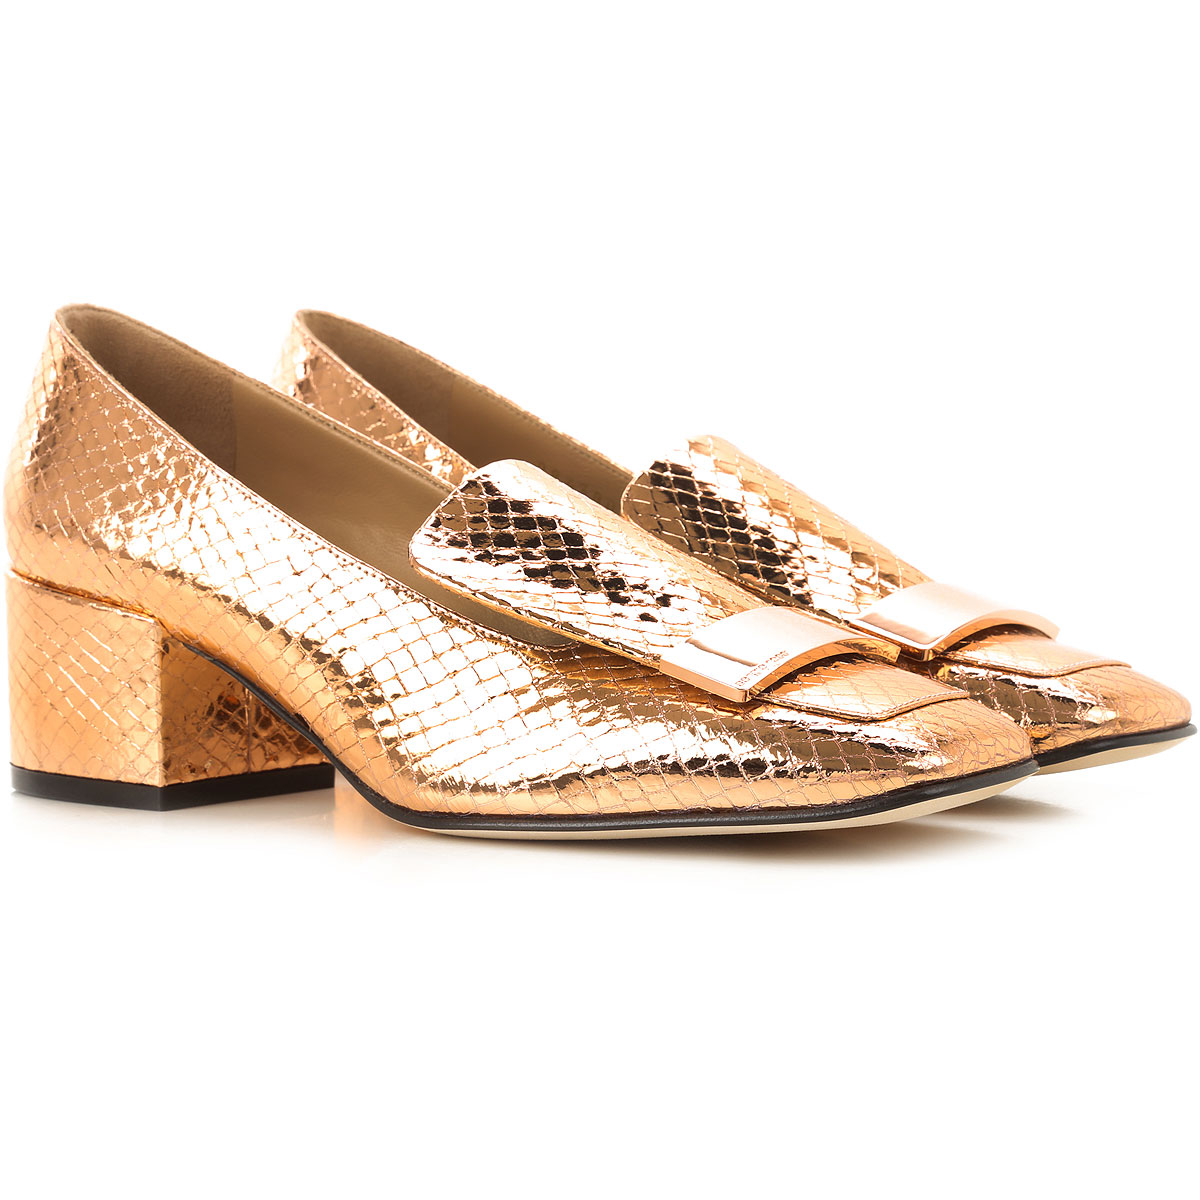 Sergio Rossi Loafers for Women Golden Pink USA - GOOFASH